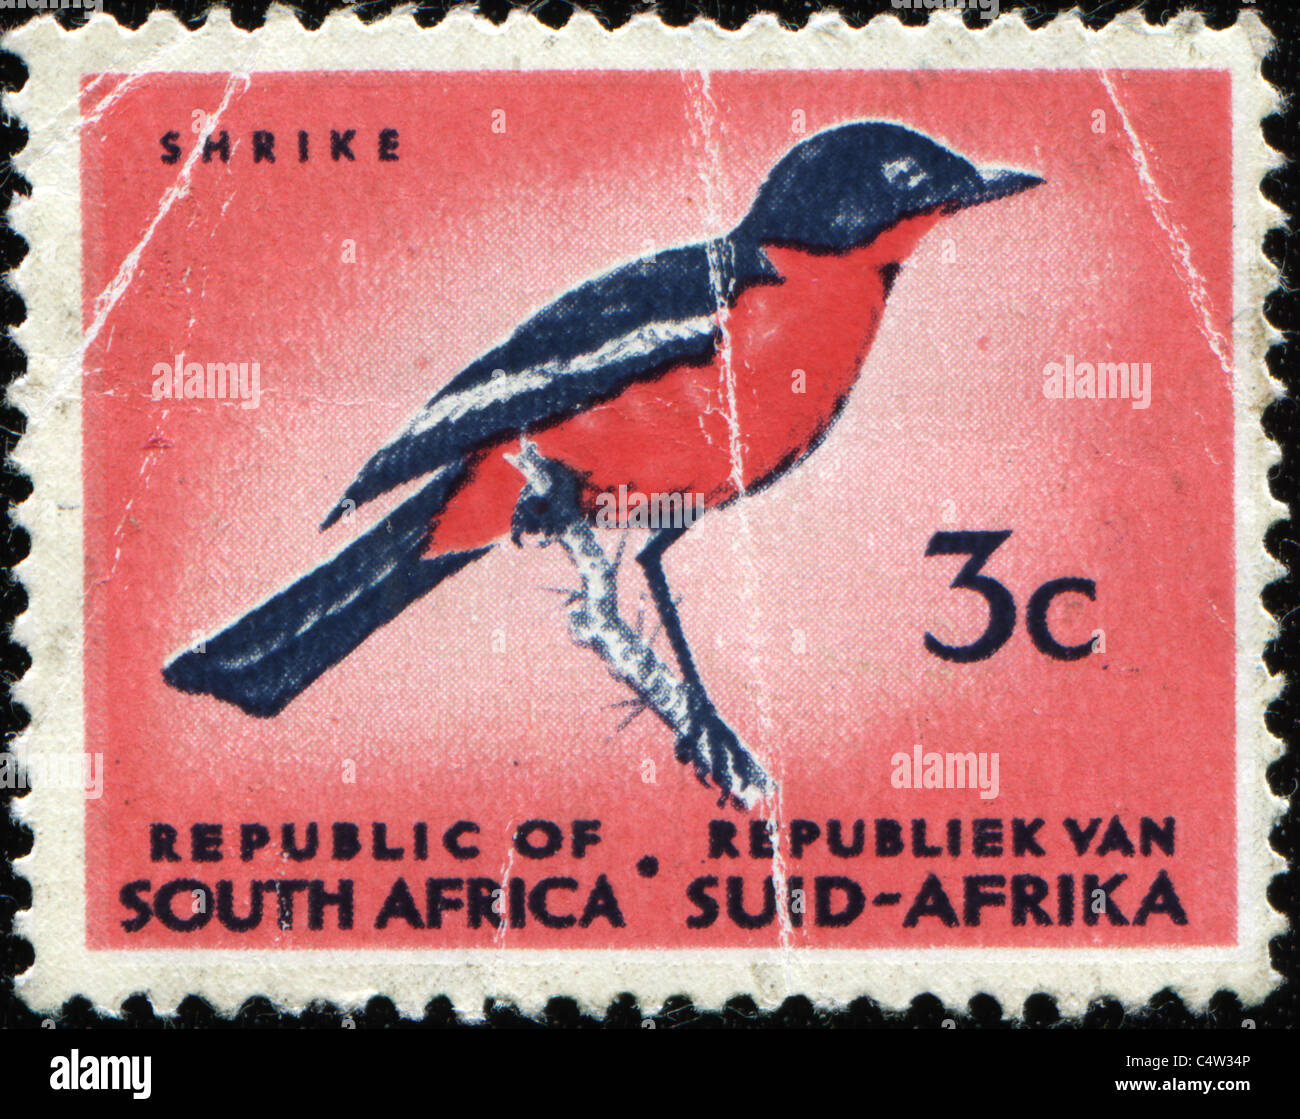 SOUTH AFRICA - CIRCA 1971: A stamp printed in South Africa shows image of a Shrike, circa 1971 - Stock Image